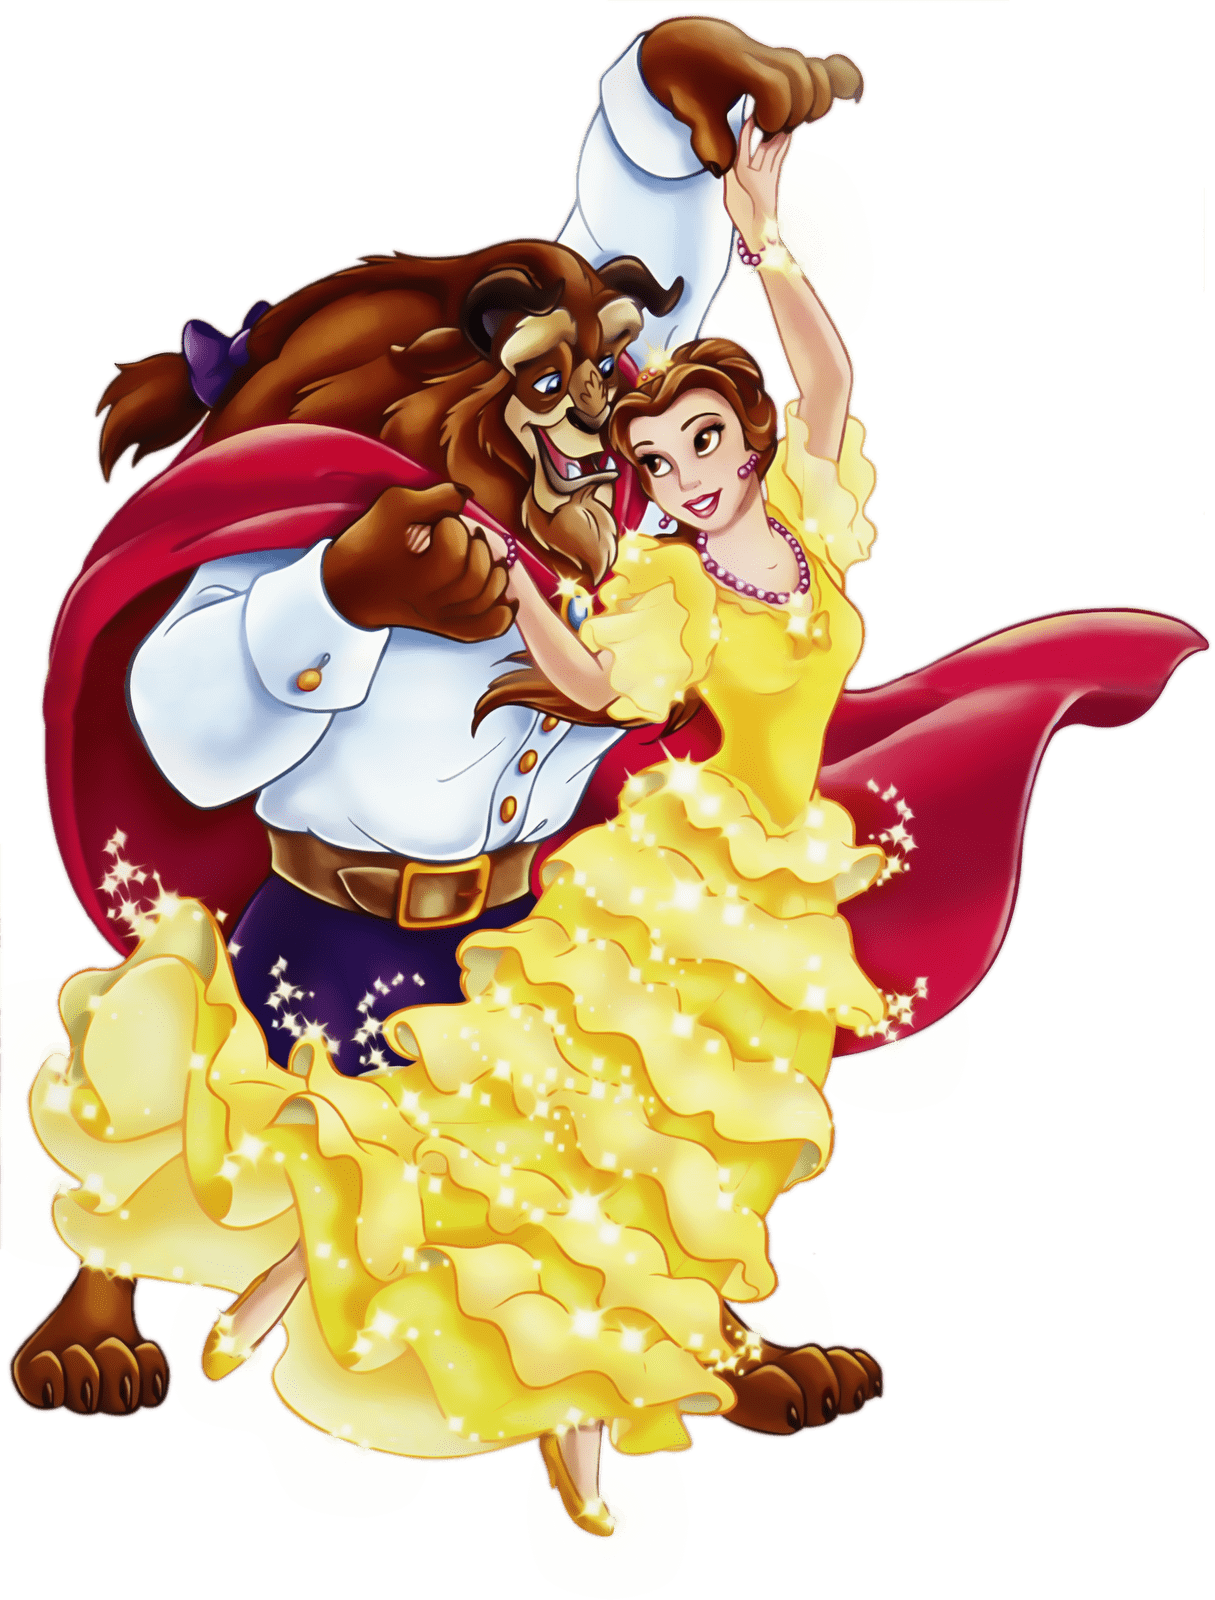 Belle Dancing With the Beast transparent PNG.